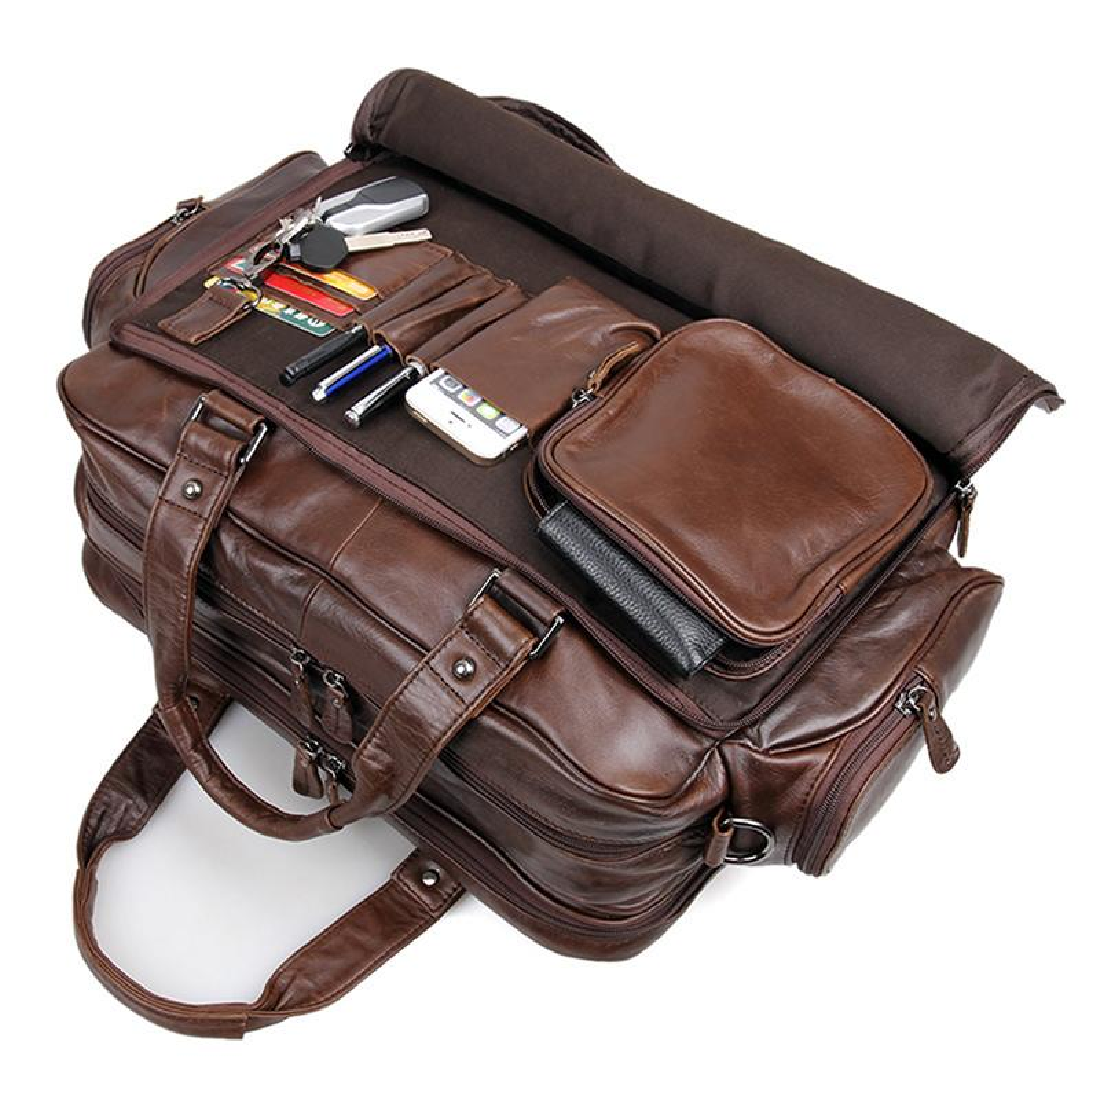 13141310ee19 Real Leather Briefcase Laptop Messenger bag with free gift Men Double  zipper crazy horse leather long wallet 24 card holder clutch purse on  Storenvy